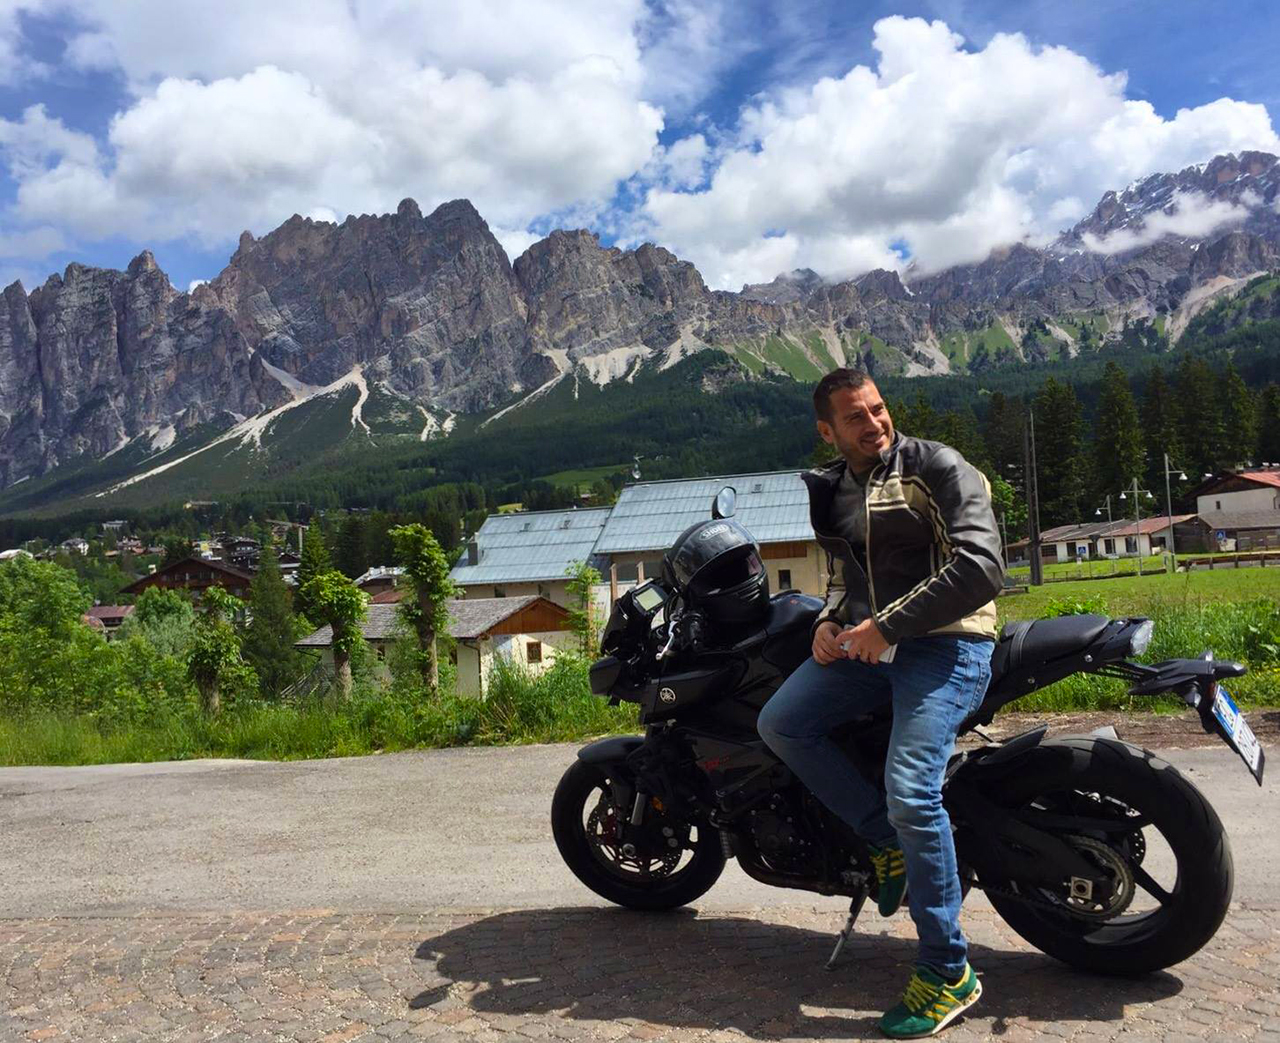 Andrea Colombi Country Manager di Yamaha Italia